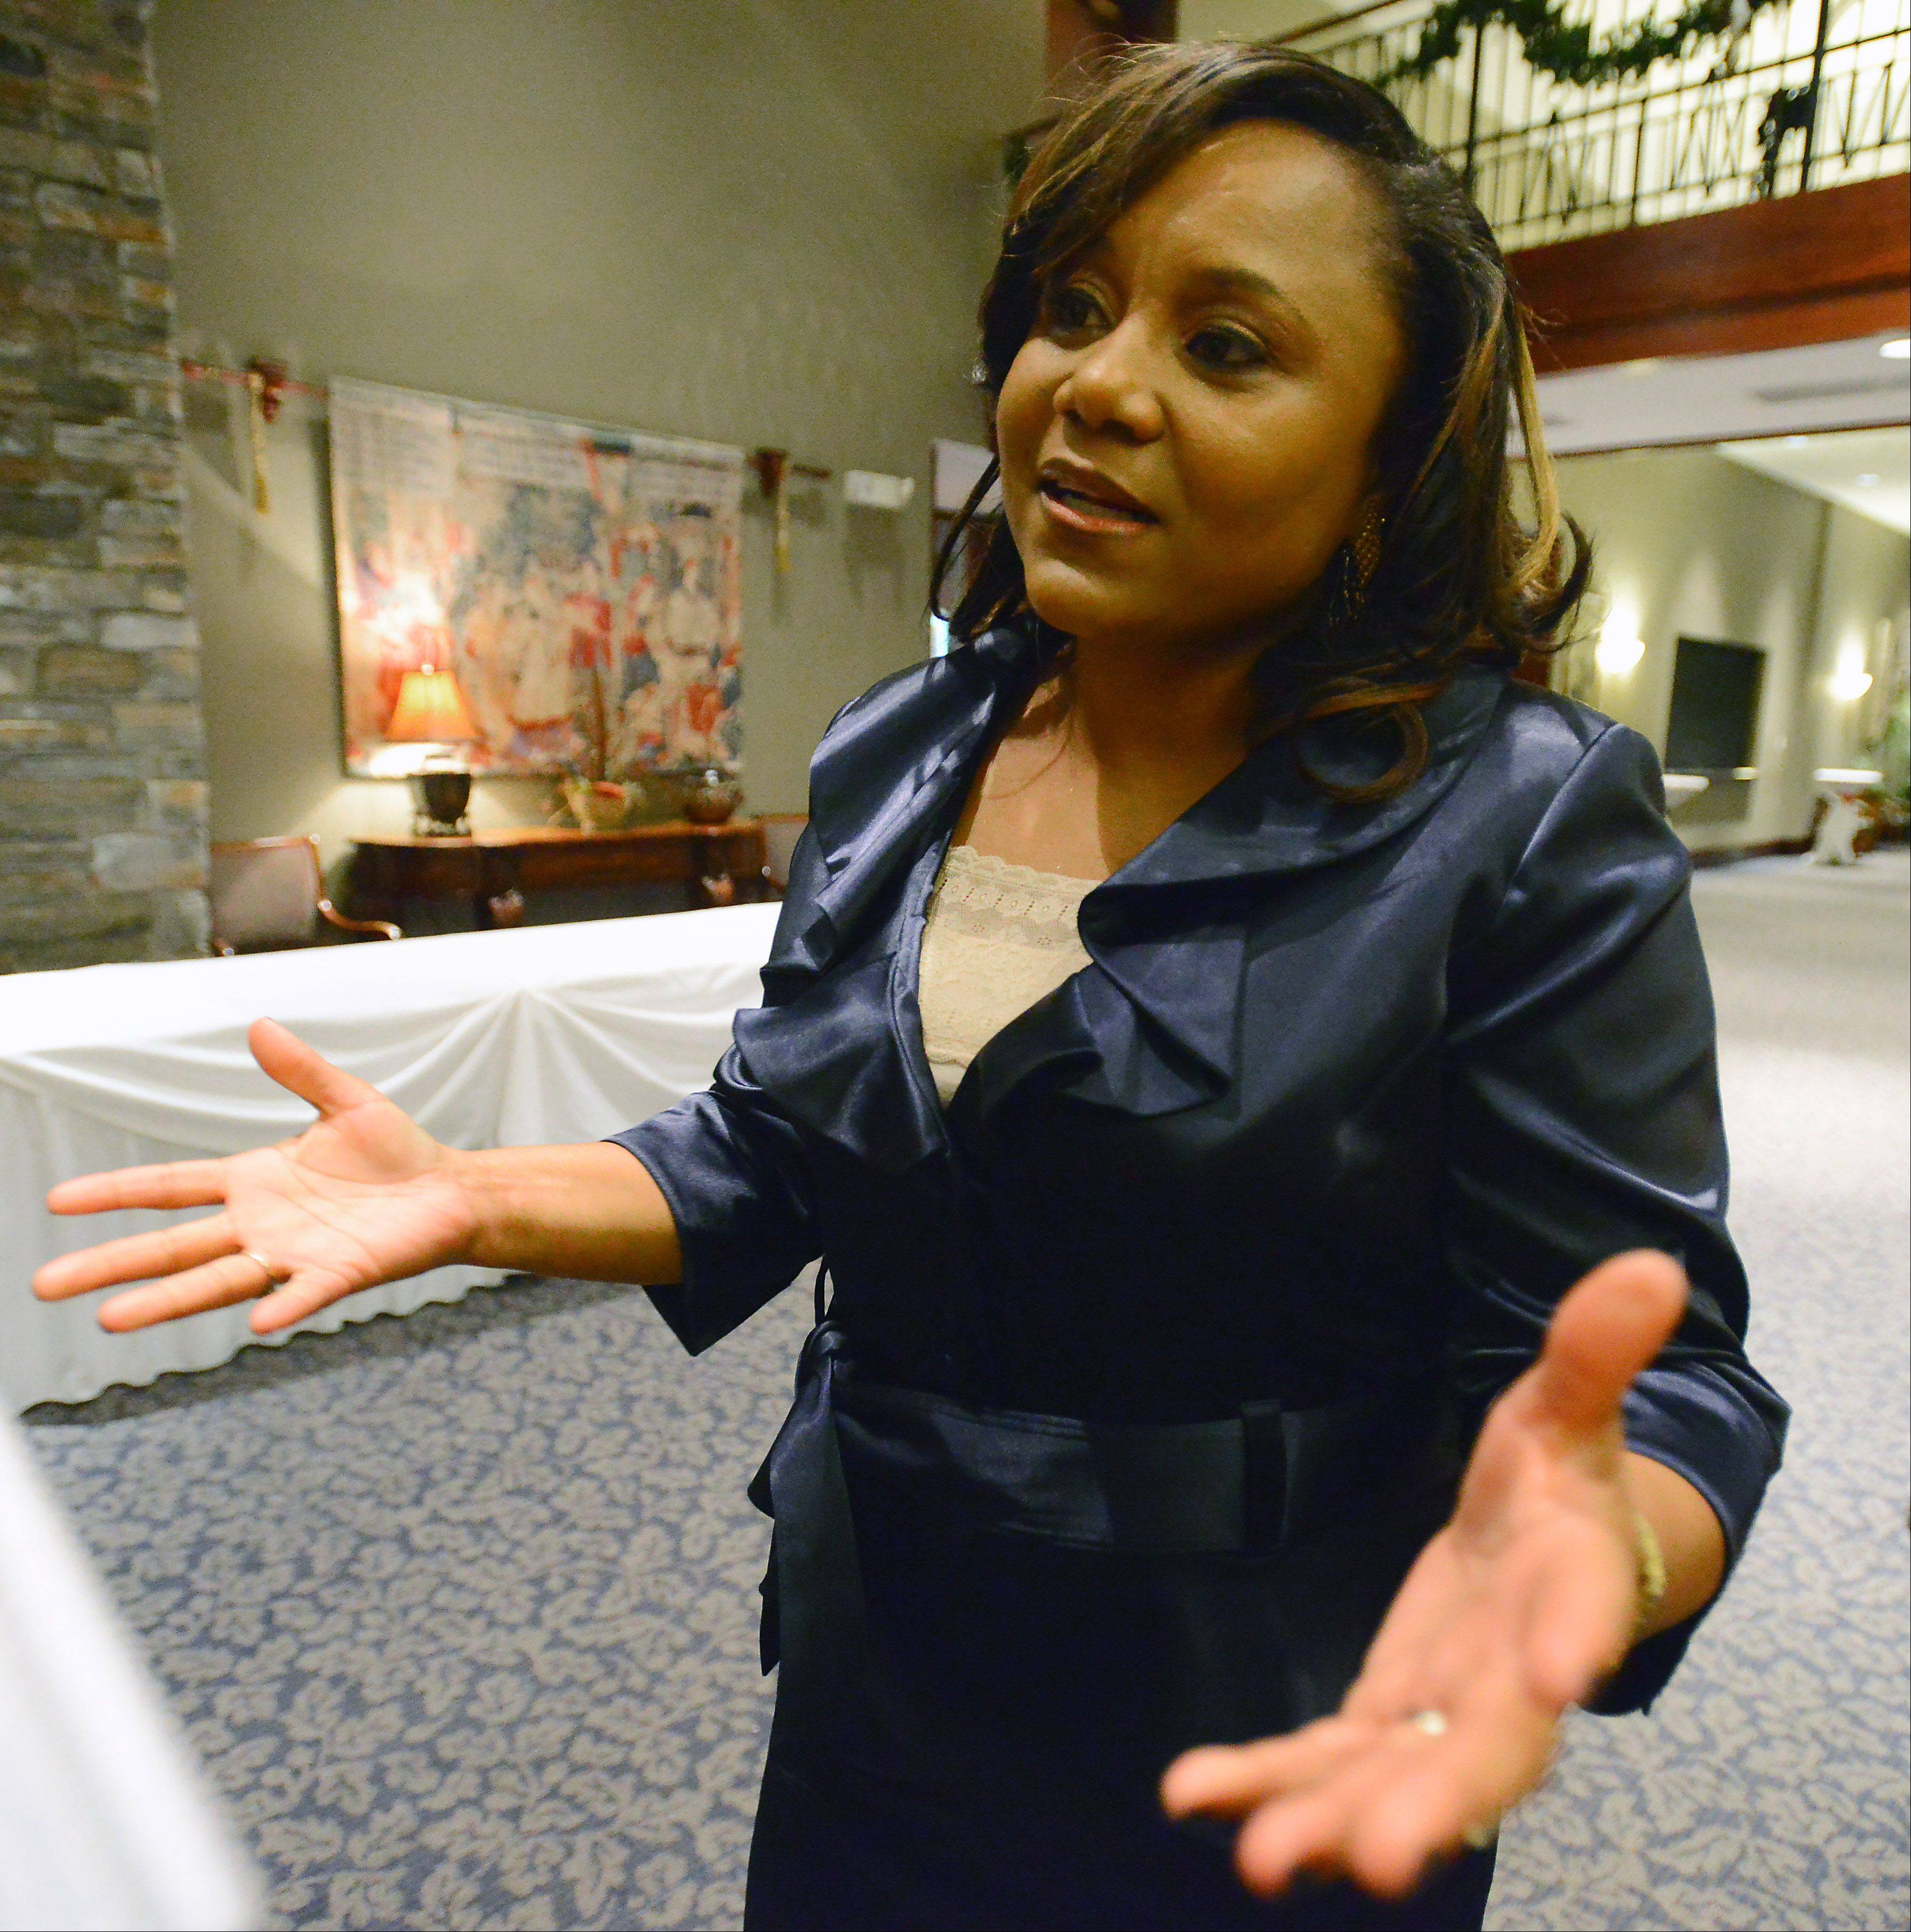 Toni Carter was honored Friday at the 12th annual Martin Luther King Jr. remembrance and celebration dinner in Hoffman Estates.